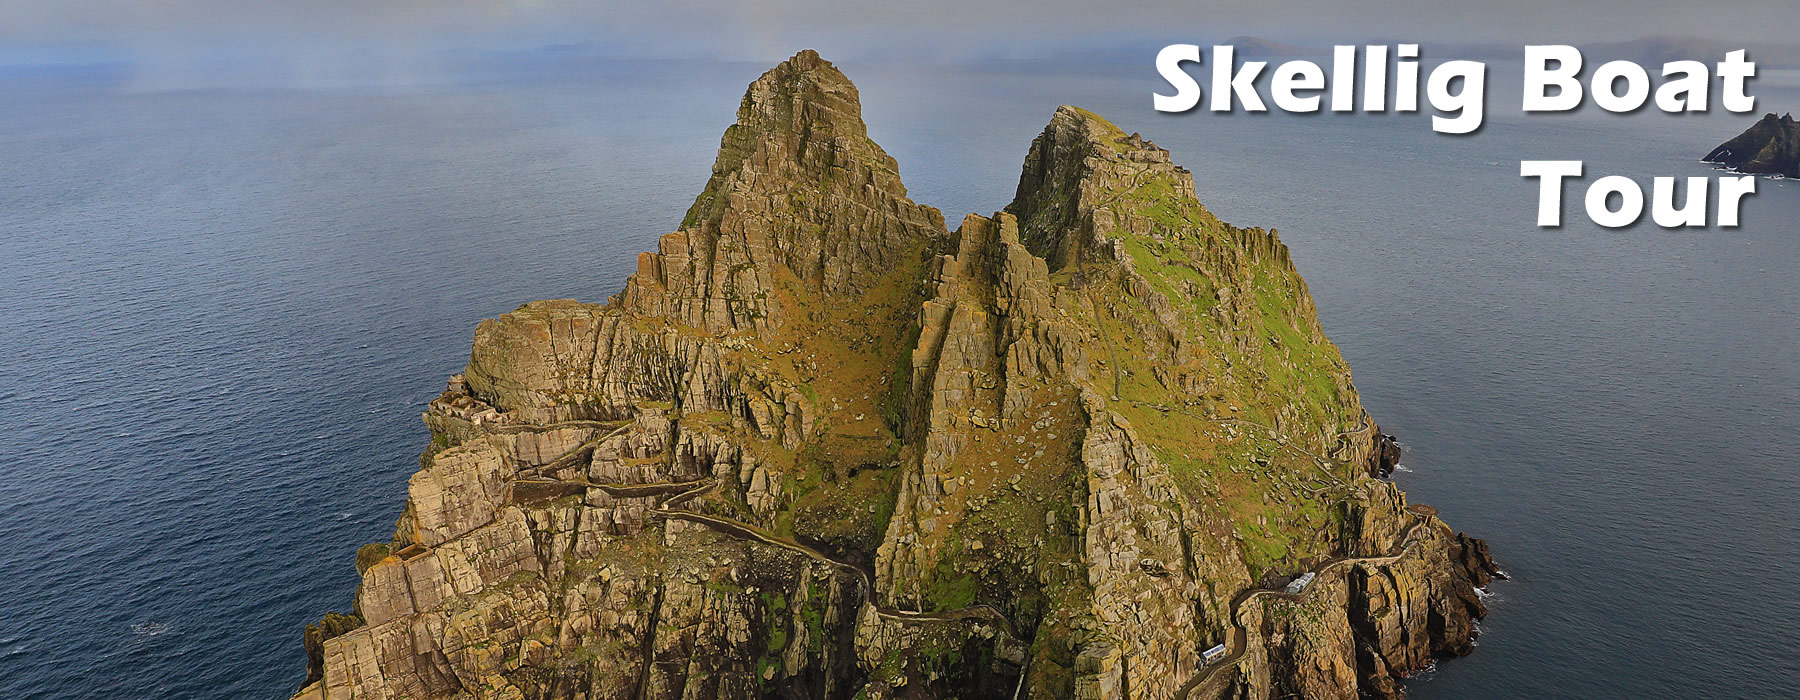 Skellig Boat Tour